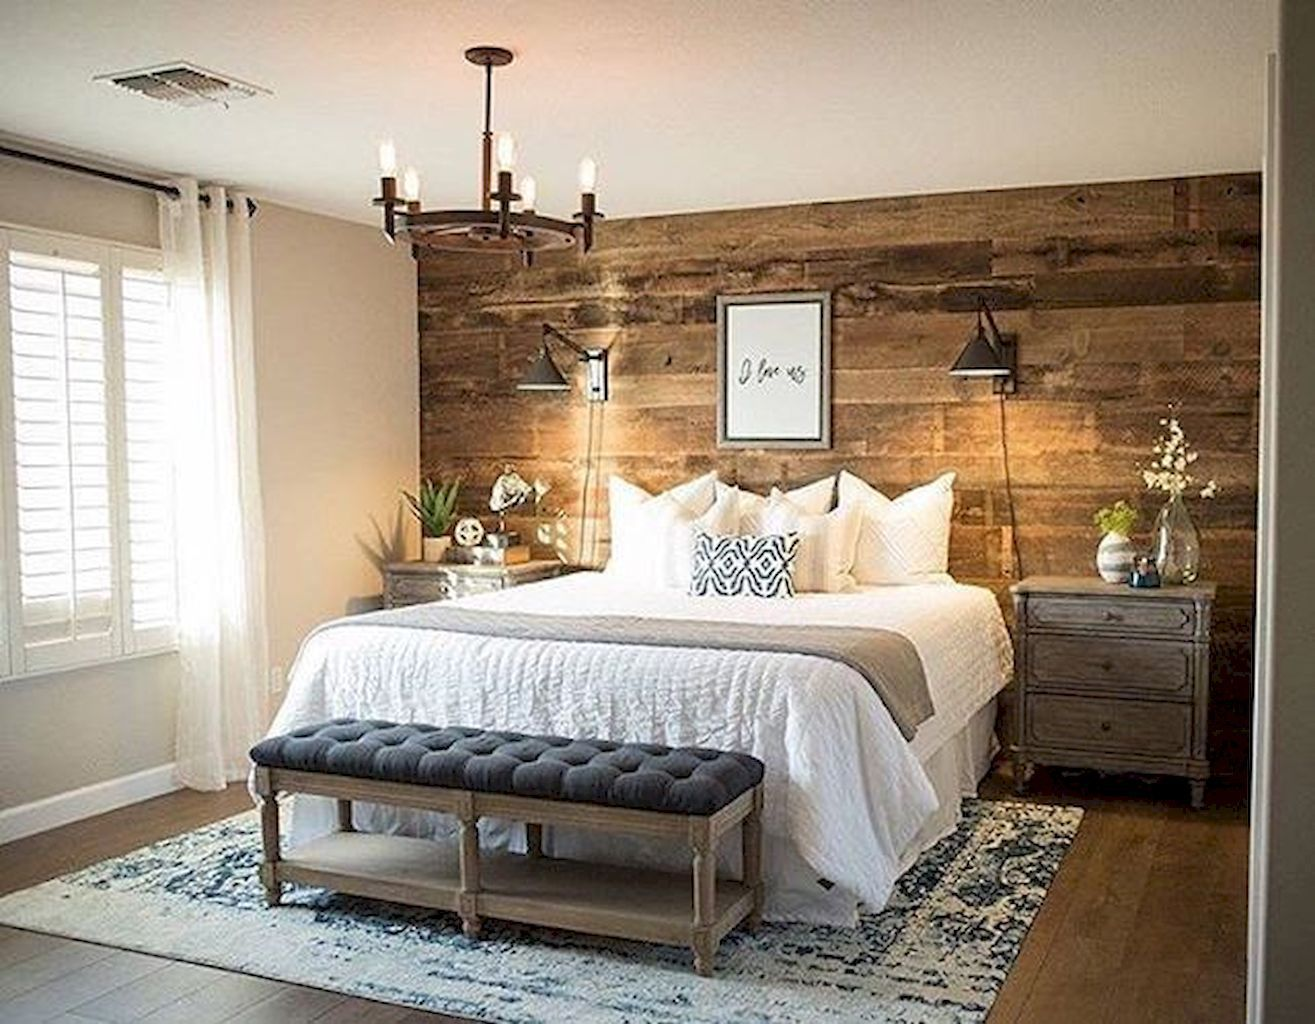 Farmhouse Master Bedroom Decorating Ideas 29 Farmhouse